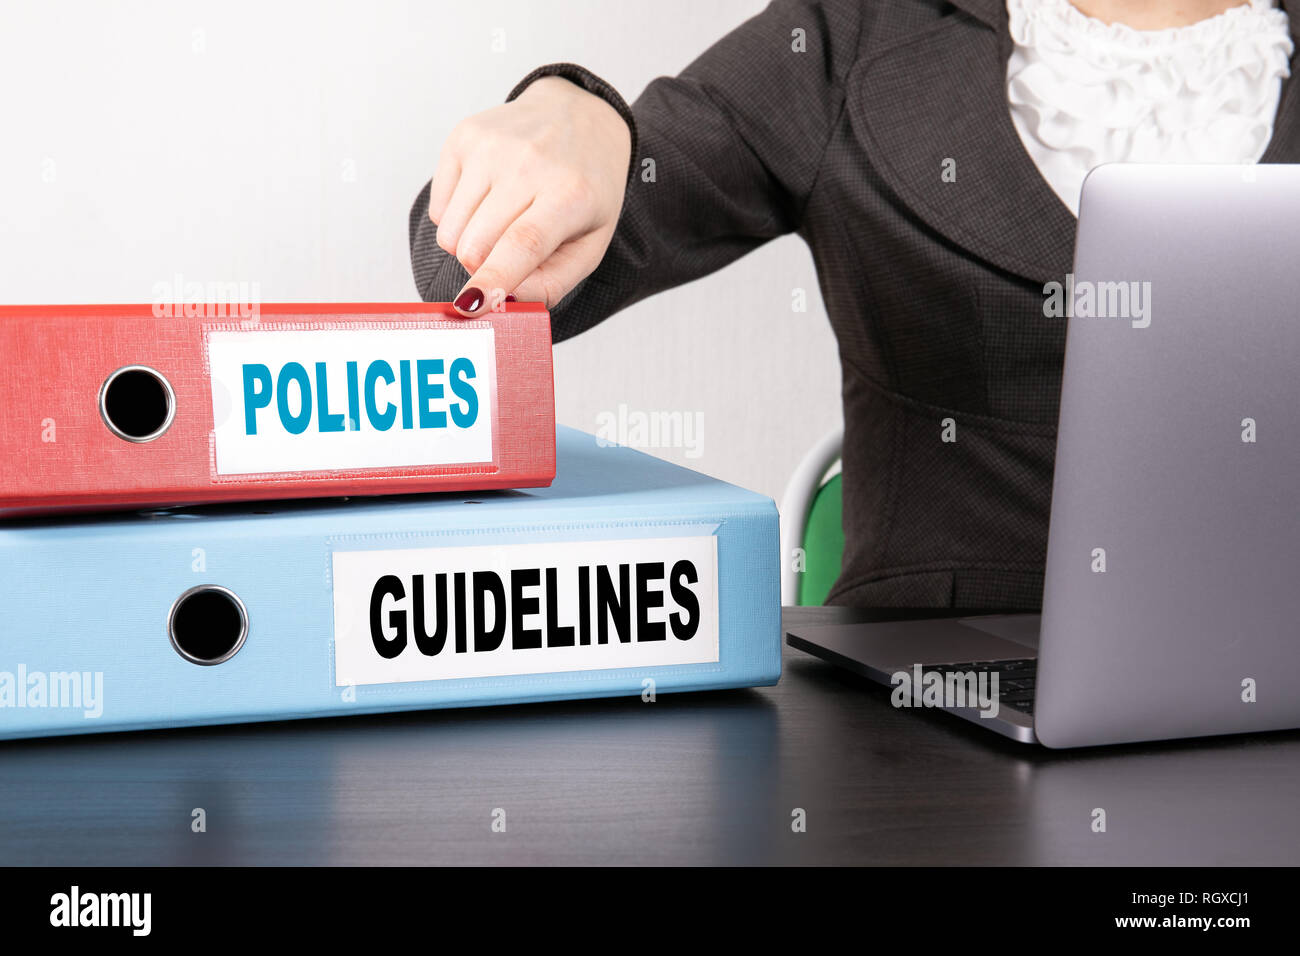 Policies and Guidelines concept - Stock Image